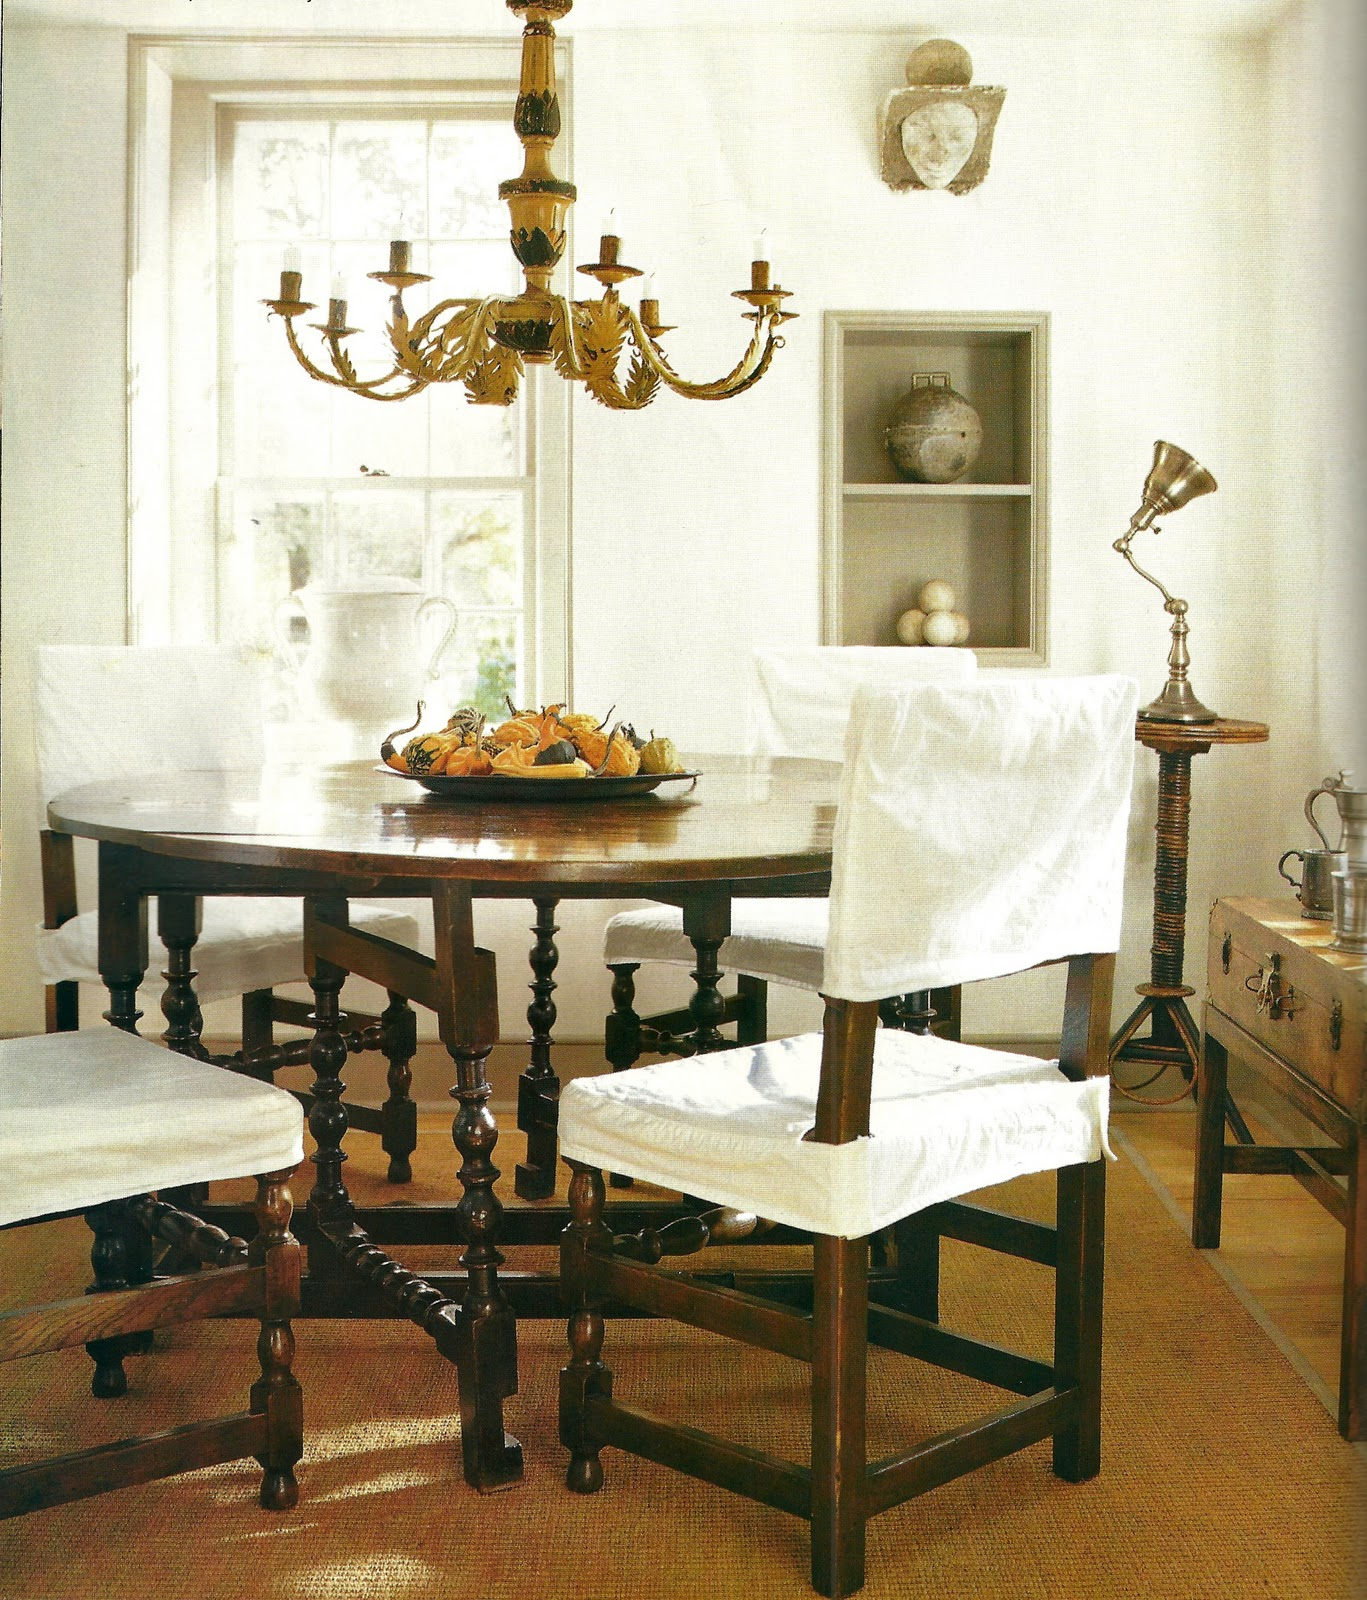 Dining Rooms From Elle Decor: Stylelinx: DeLiCiOuS Dining Rooms